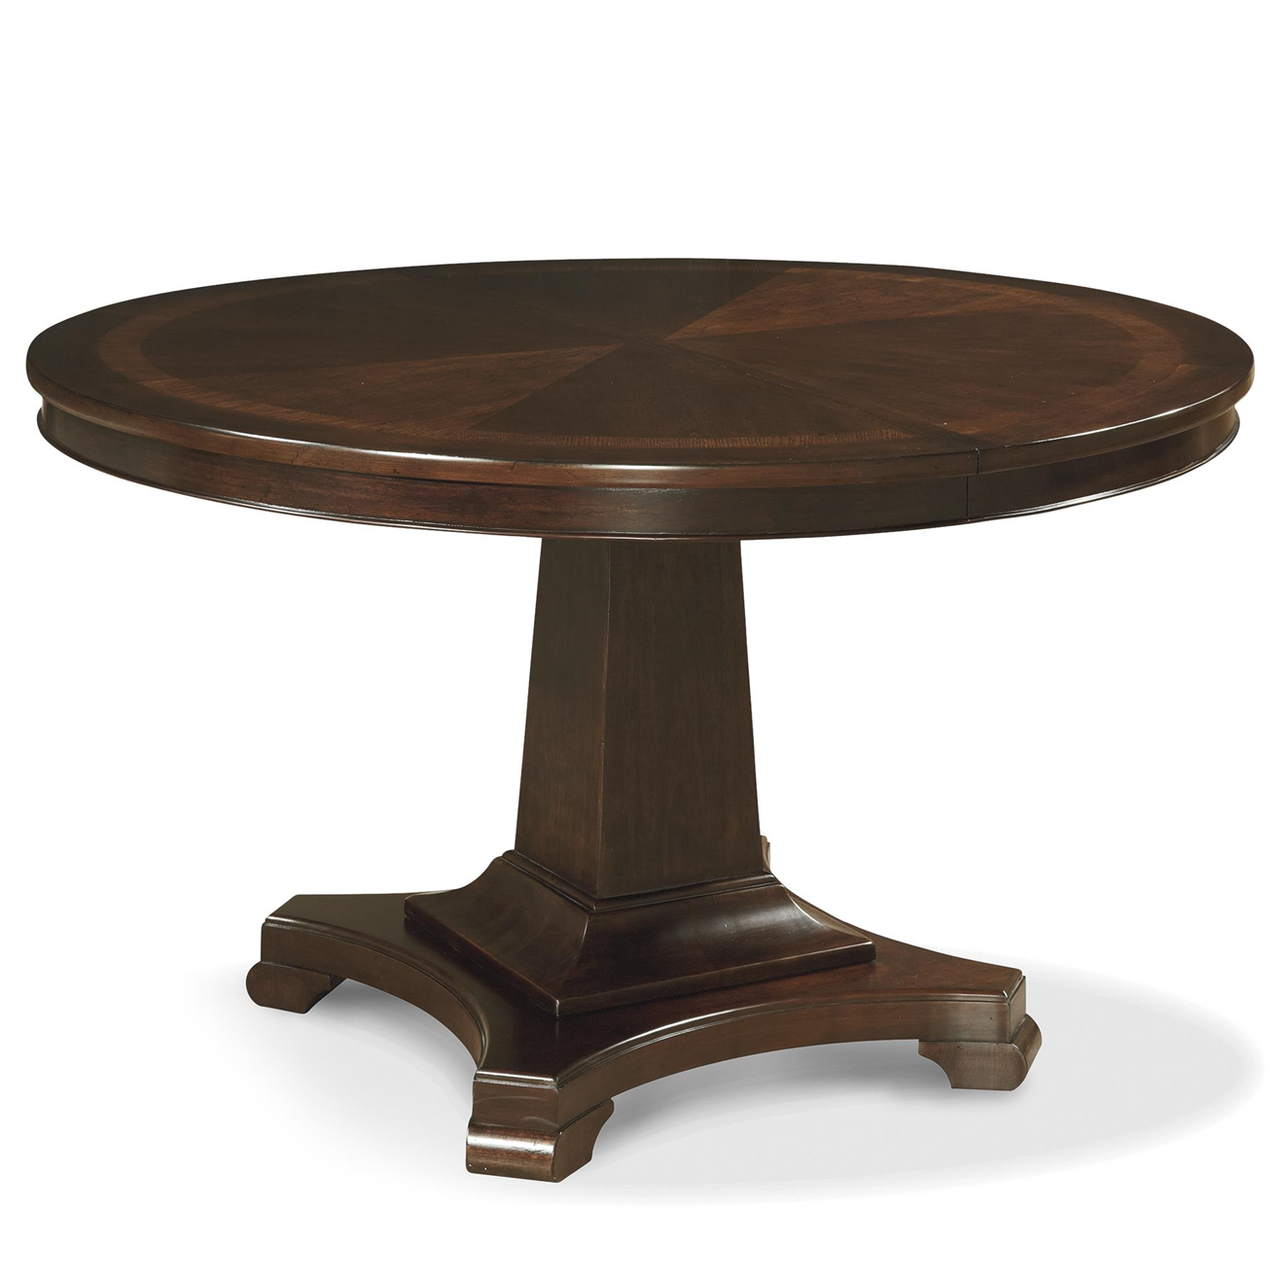 Proximity Cherry Wood Extending Round Dining Table 54 Zin Home